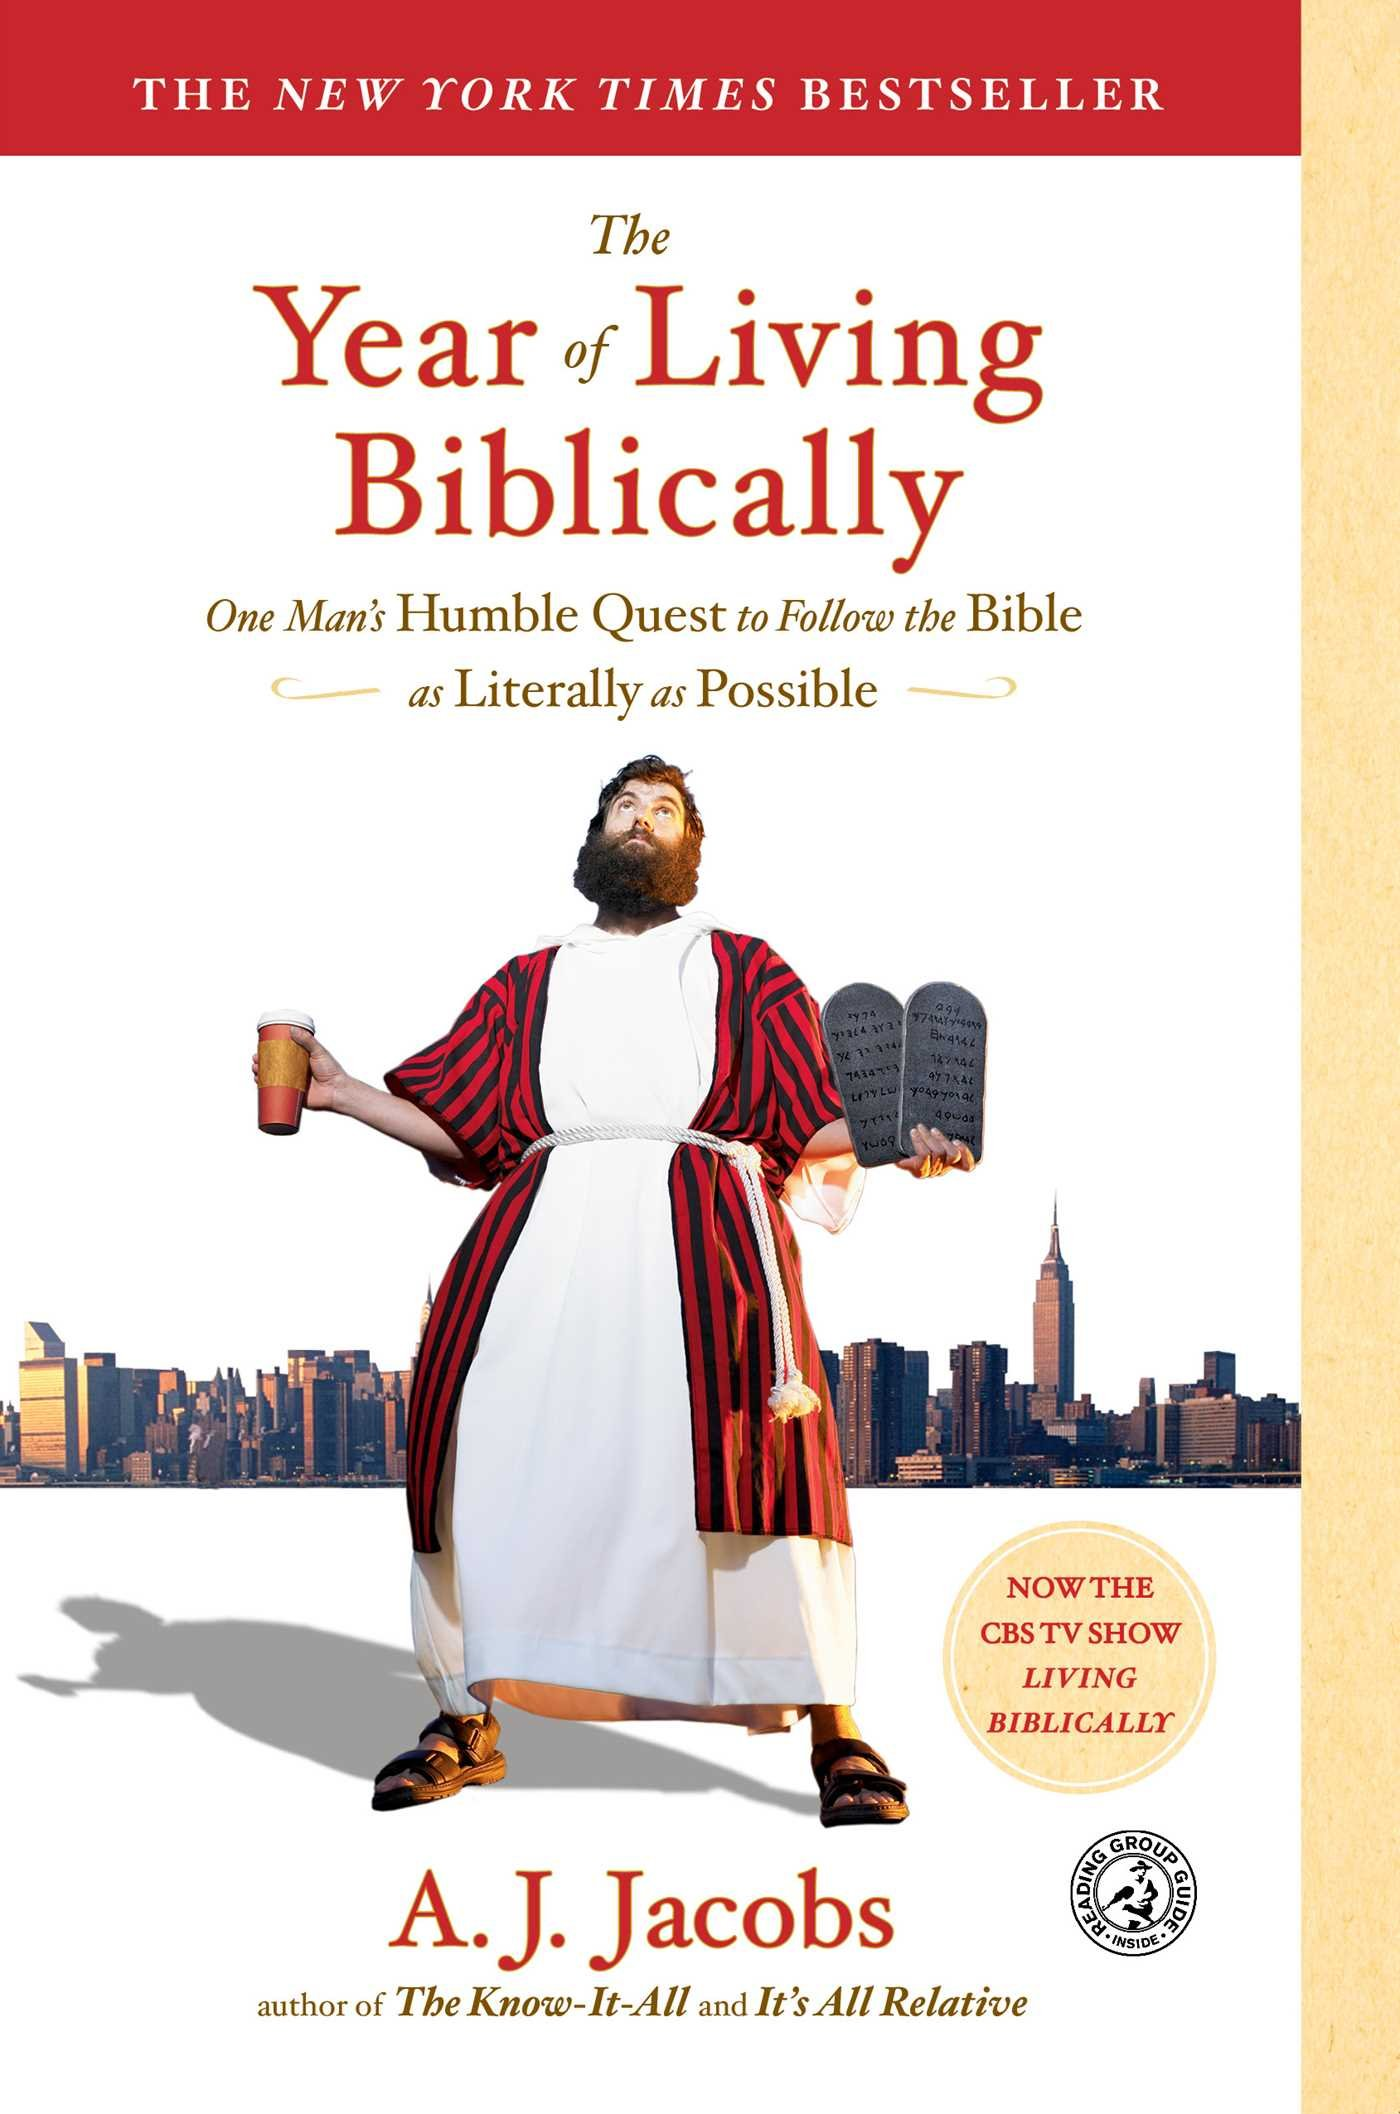 The Year of Living Biblically: One Man's Humble Quest to Follow the Bible  as Literally as Possible: A. J. Jacobs: 0884170001001: Amazon.com: Books